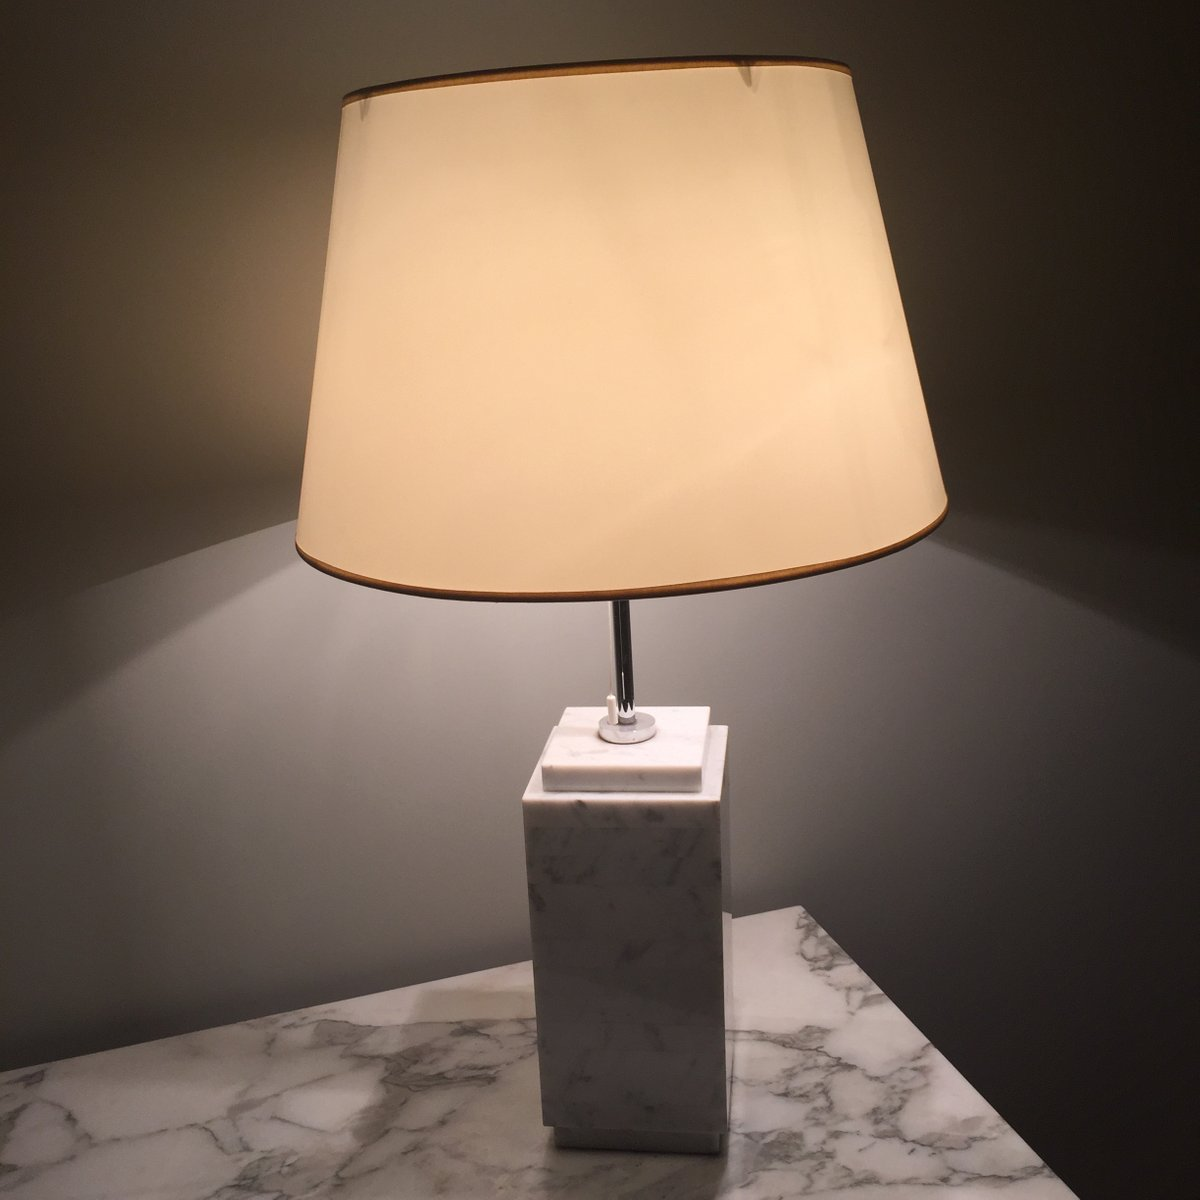 white carrara marble lamp from knoll - White Carrara Marble